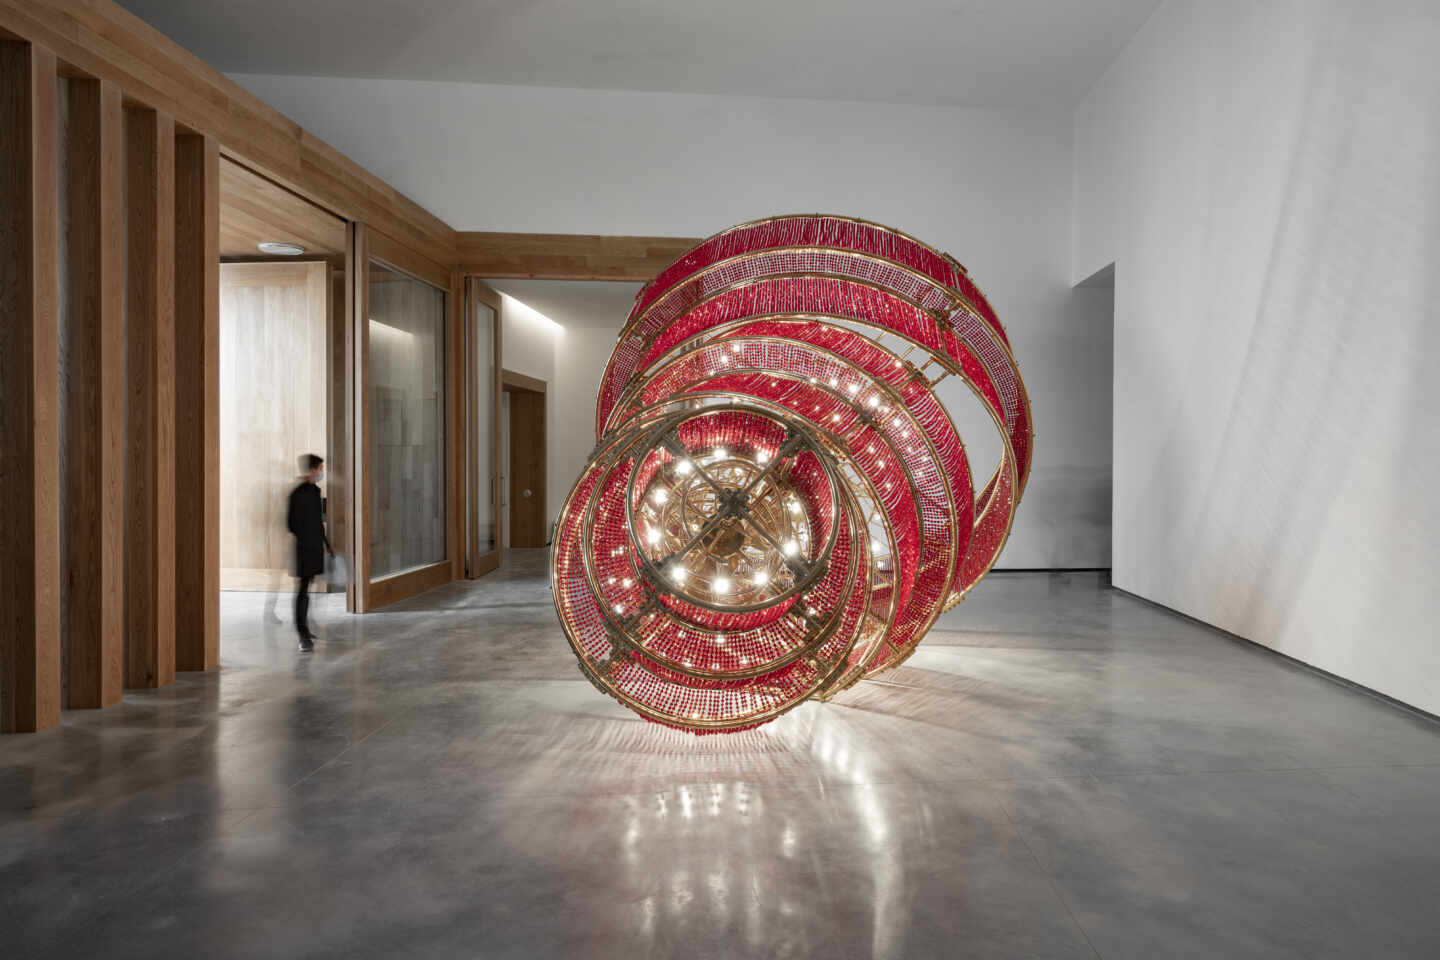 Descending Light (2007), Ai Weiwei.